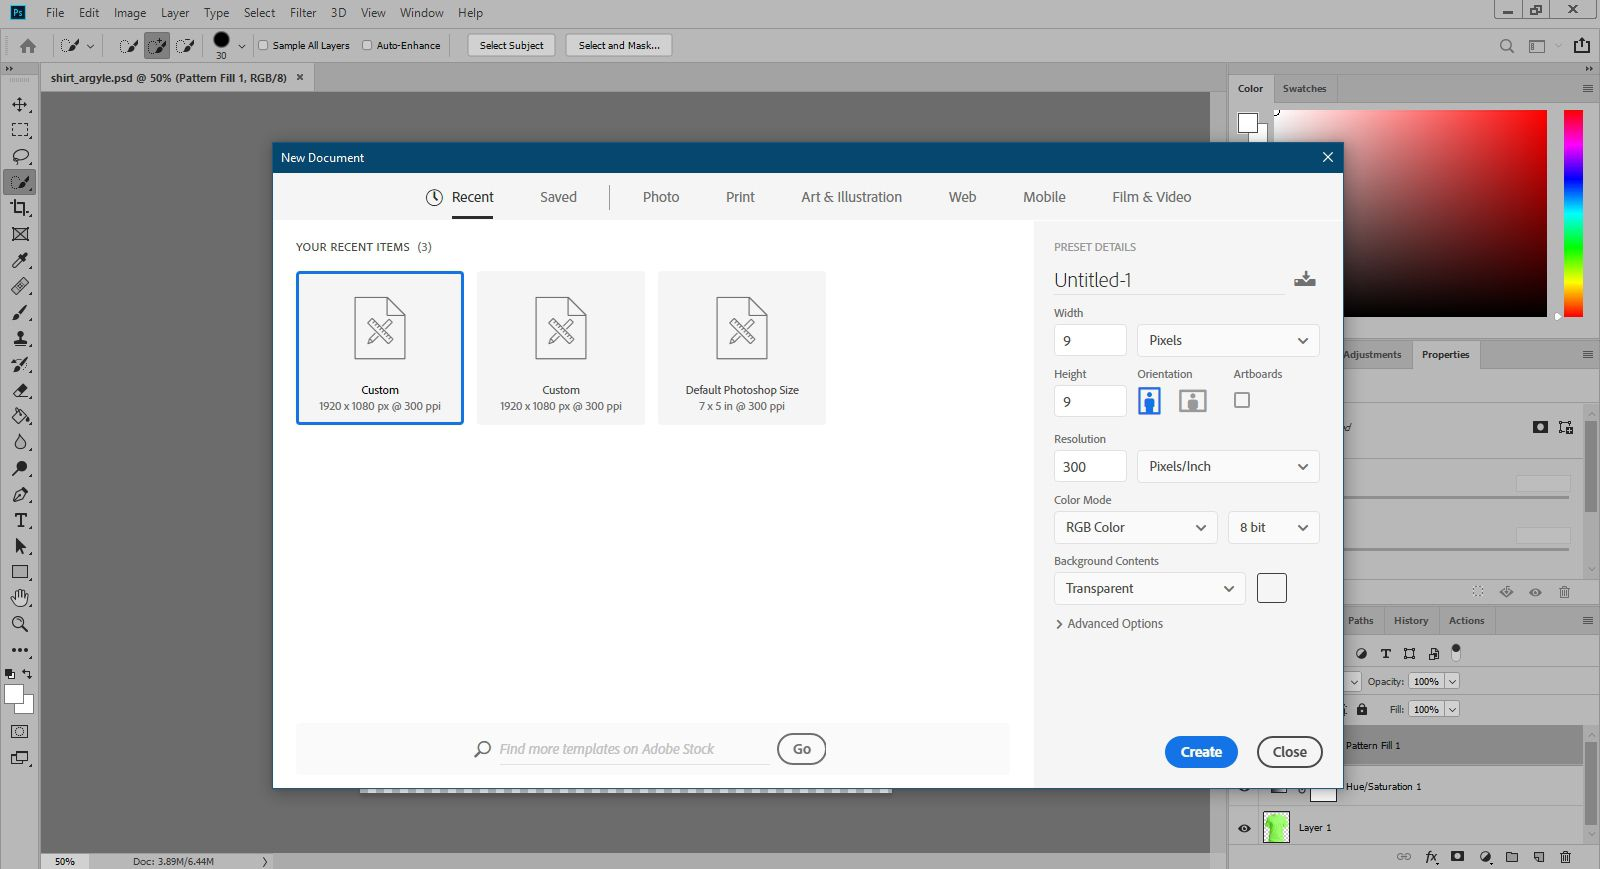 Creating a new pattern file in Photoshop.